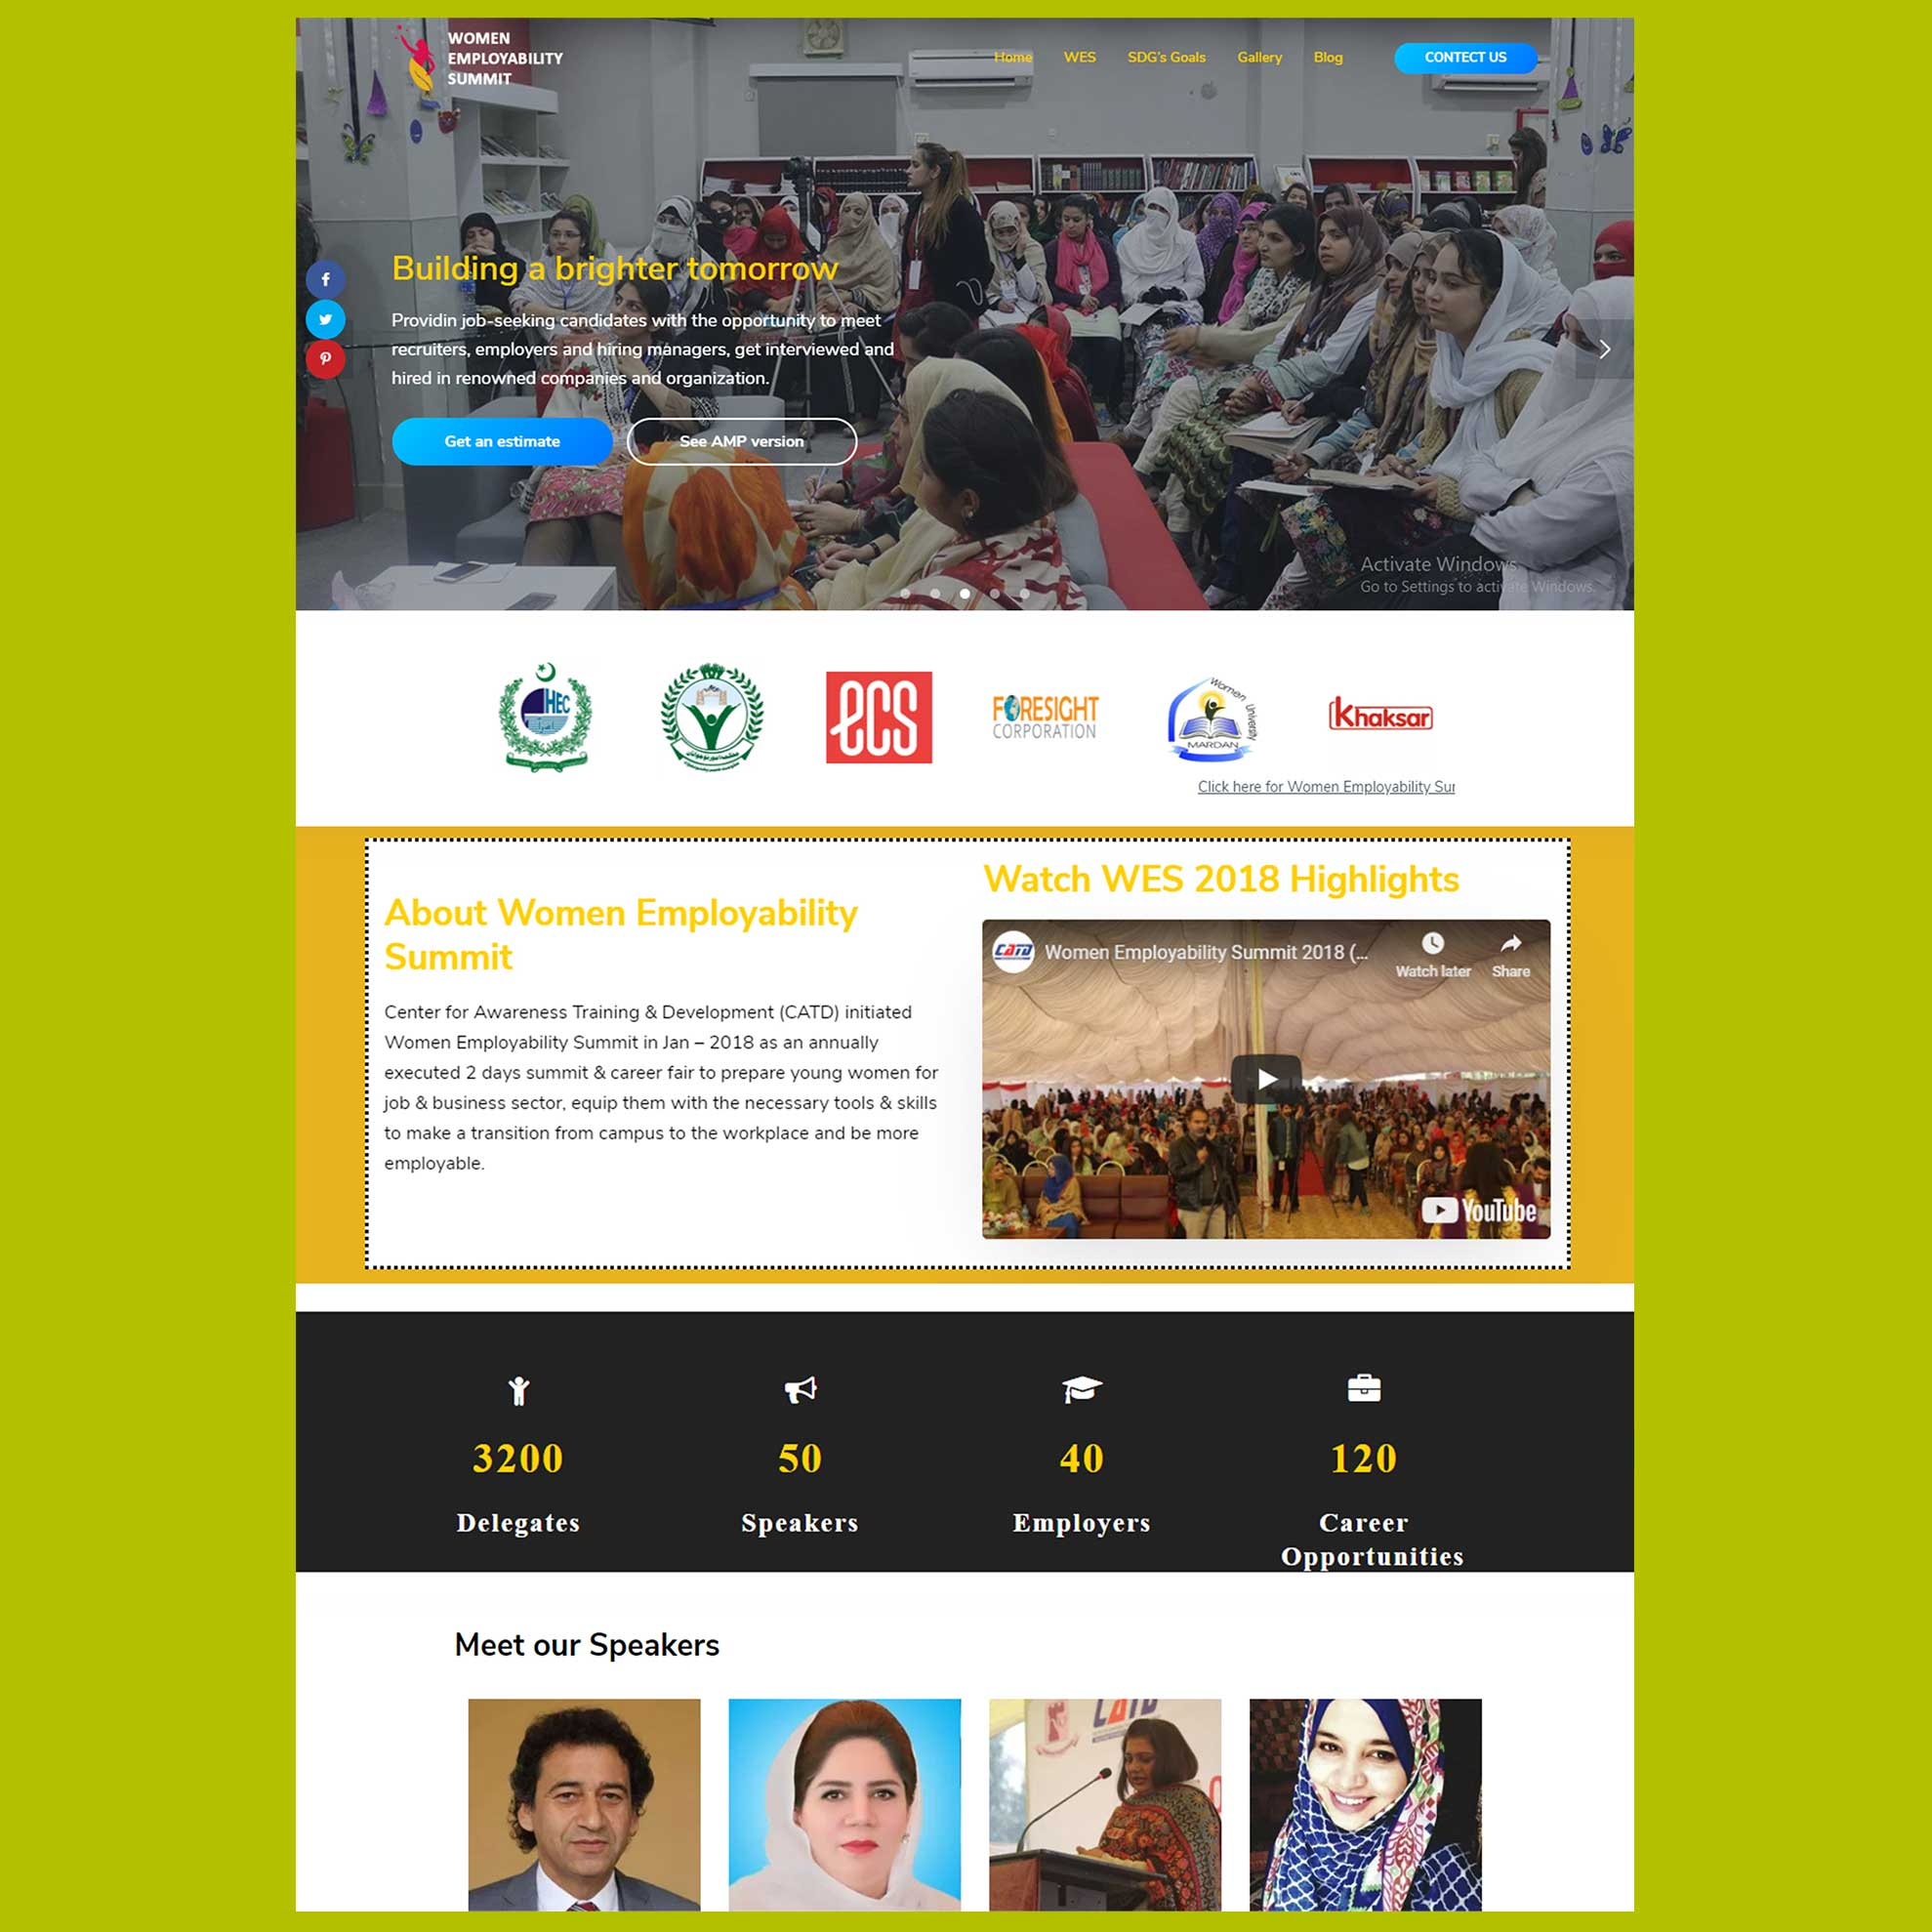 Kashif-khan-websites-Template-Designs-4th-project